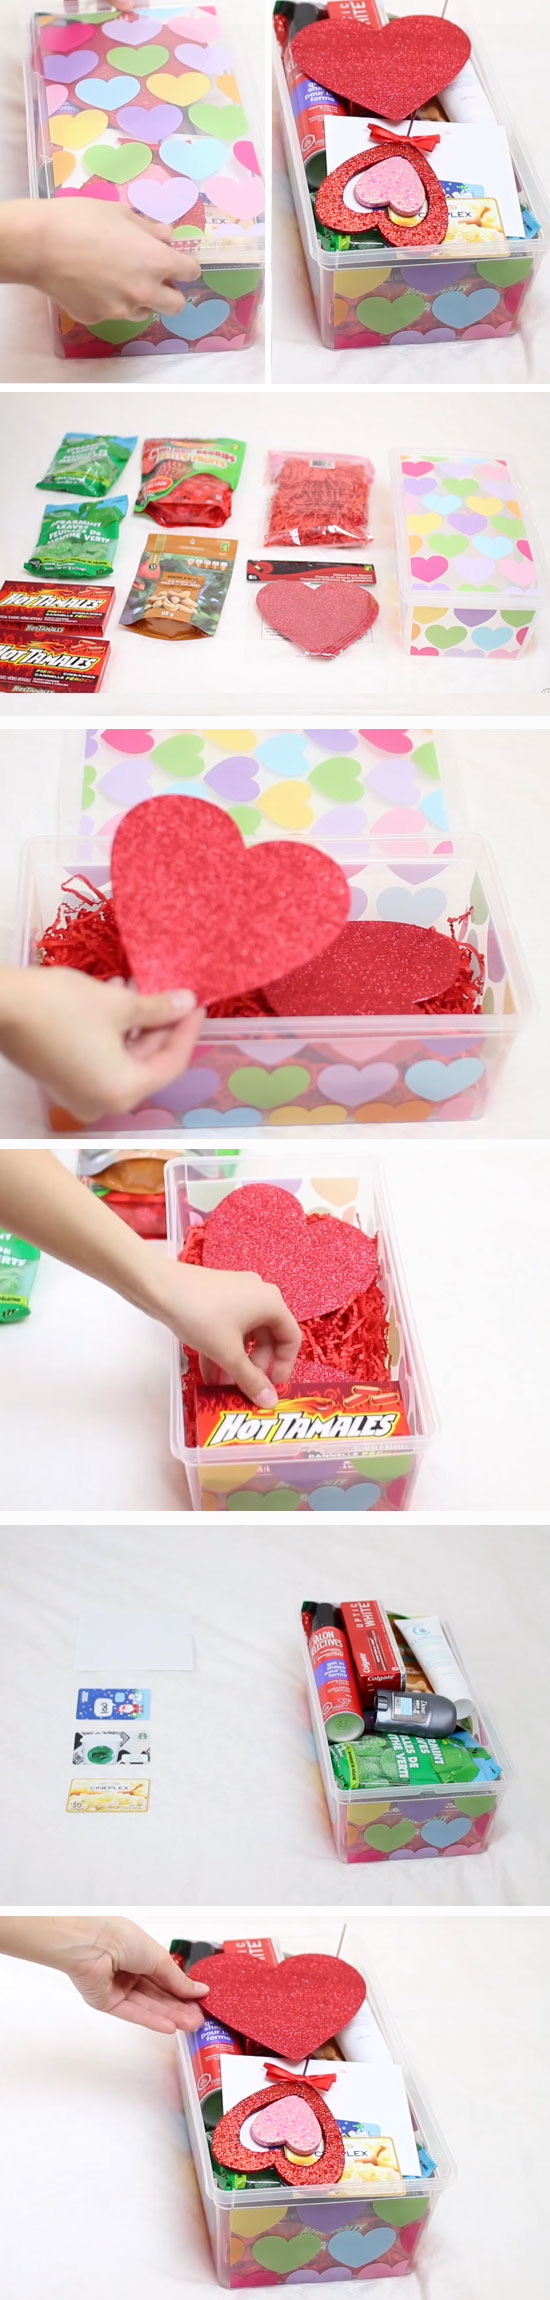 25 romantic diy valentines day crafts for him box of love solutioingenieria Image collections